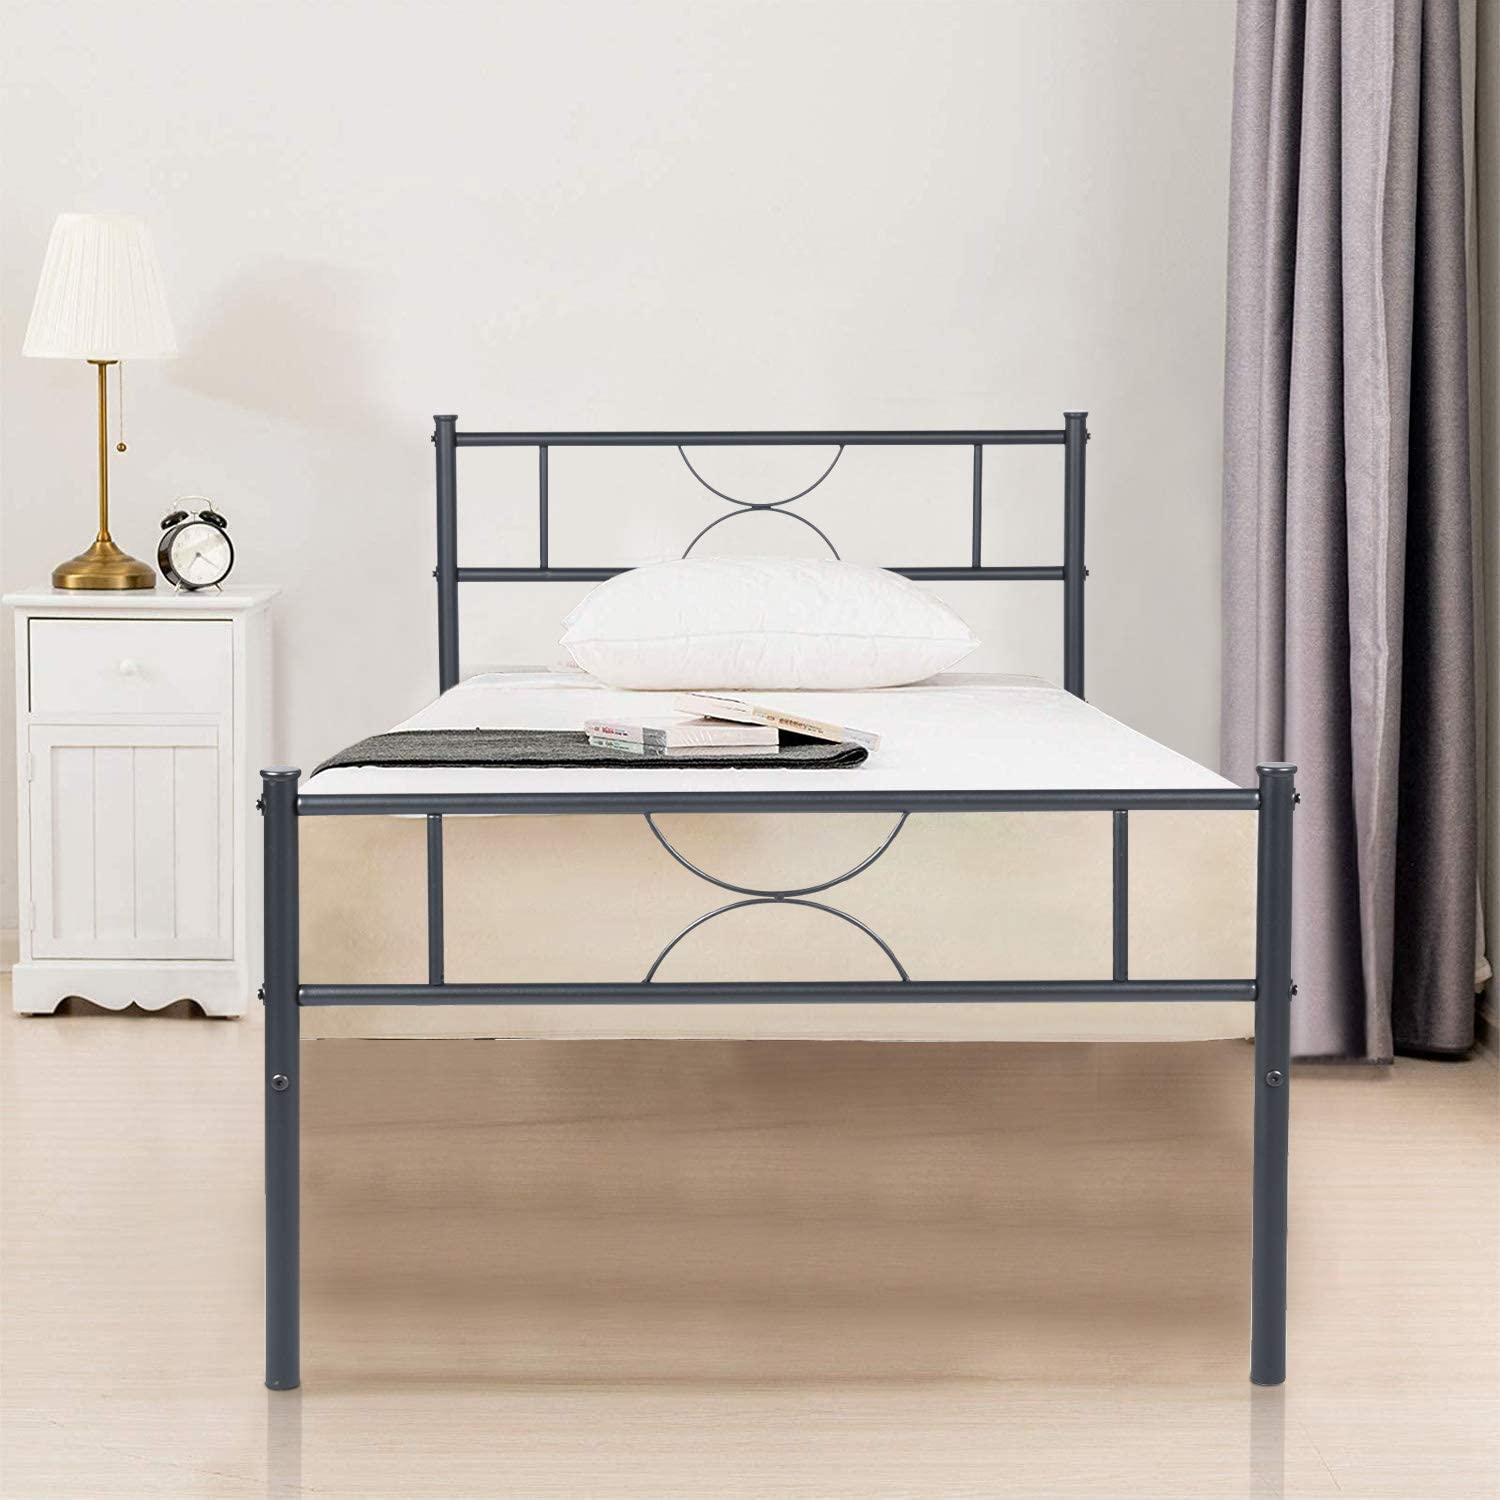 GreenForest Twin Bed Frame Single Metal Platform with Headboard Stable Metal Slats Mattress Foundation No Box Spring Needed, Black